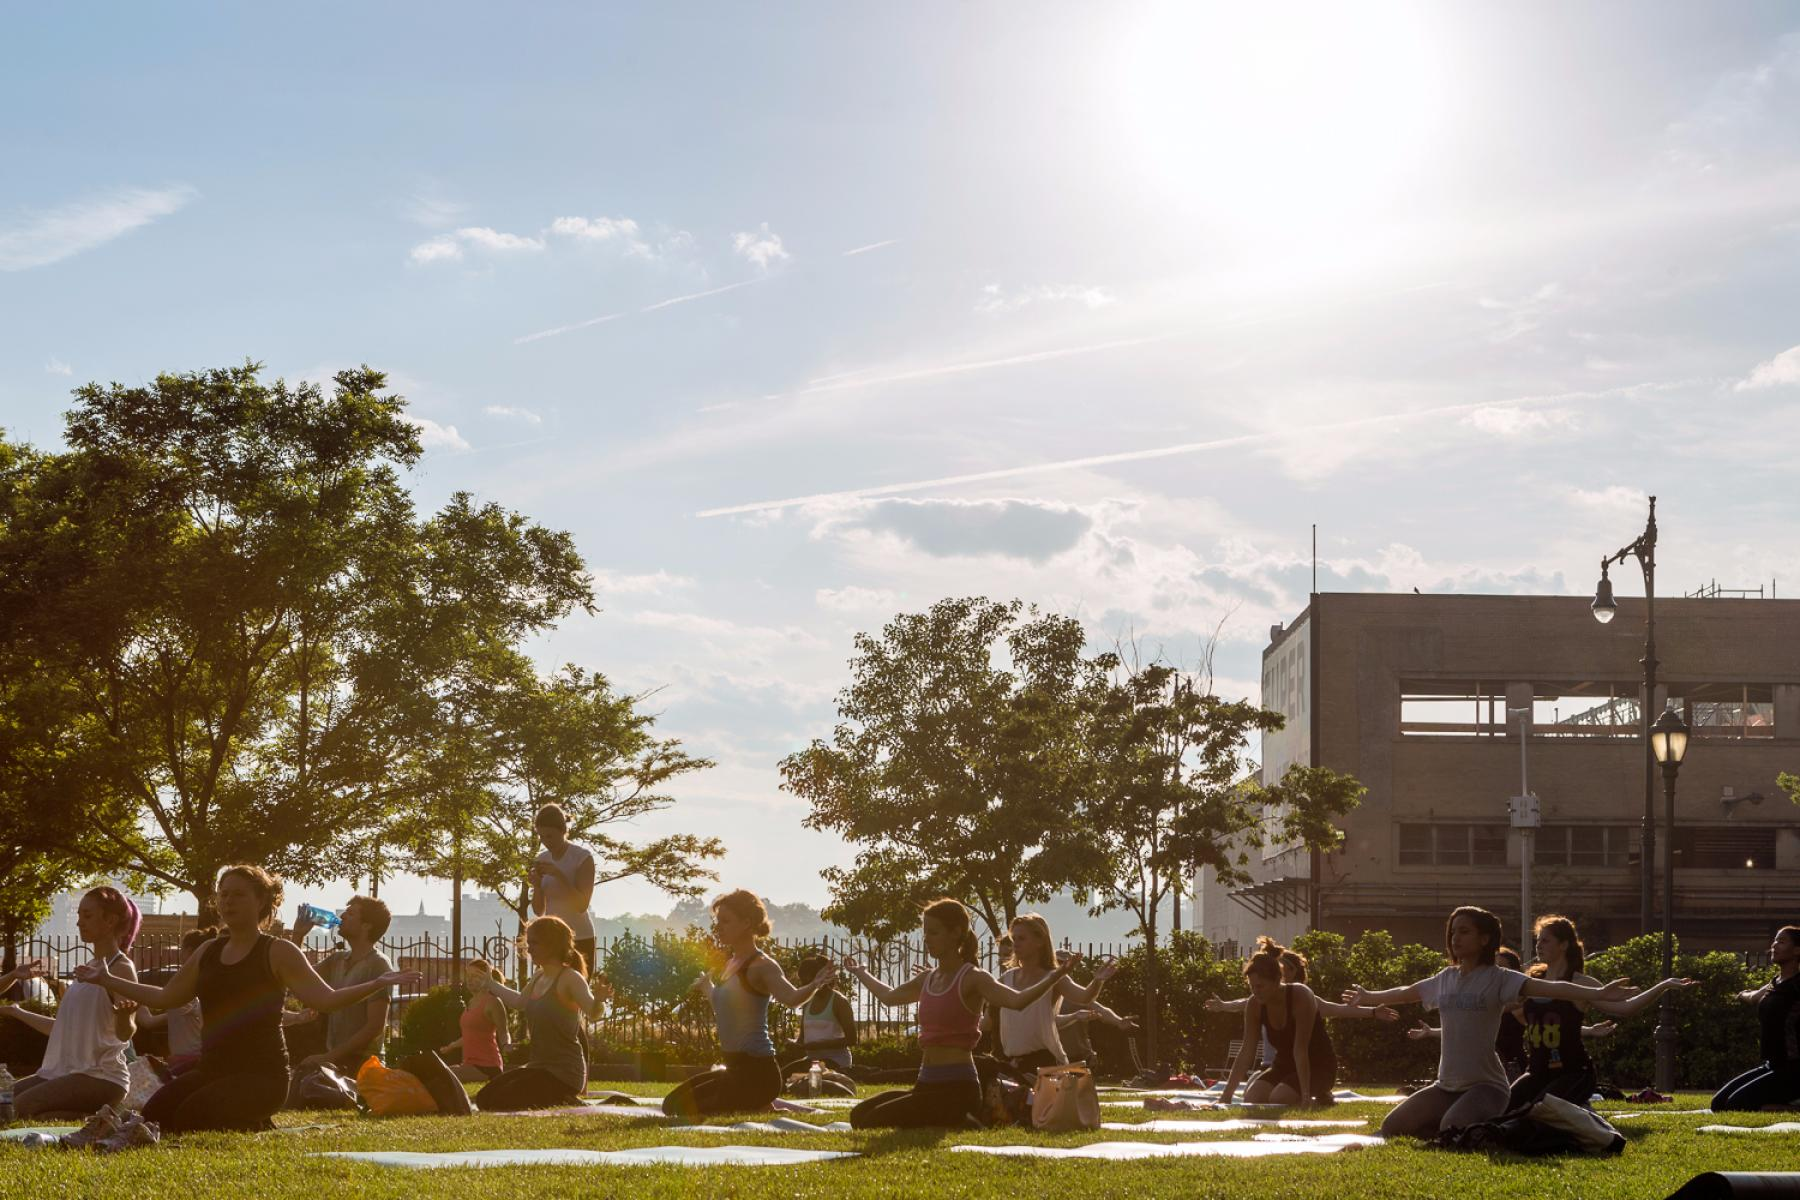 The Meatpacking District's Sweat Sessions Wellness Schedule Tuesday, August 22